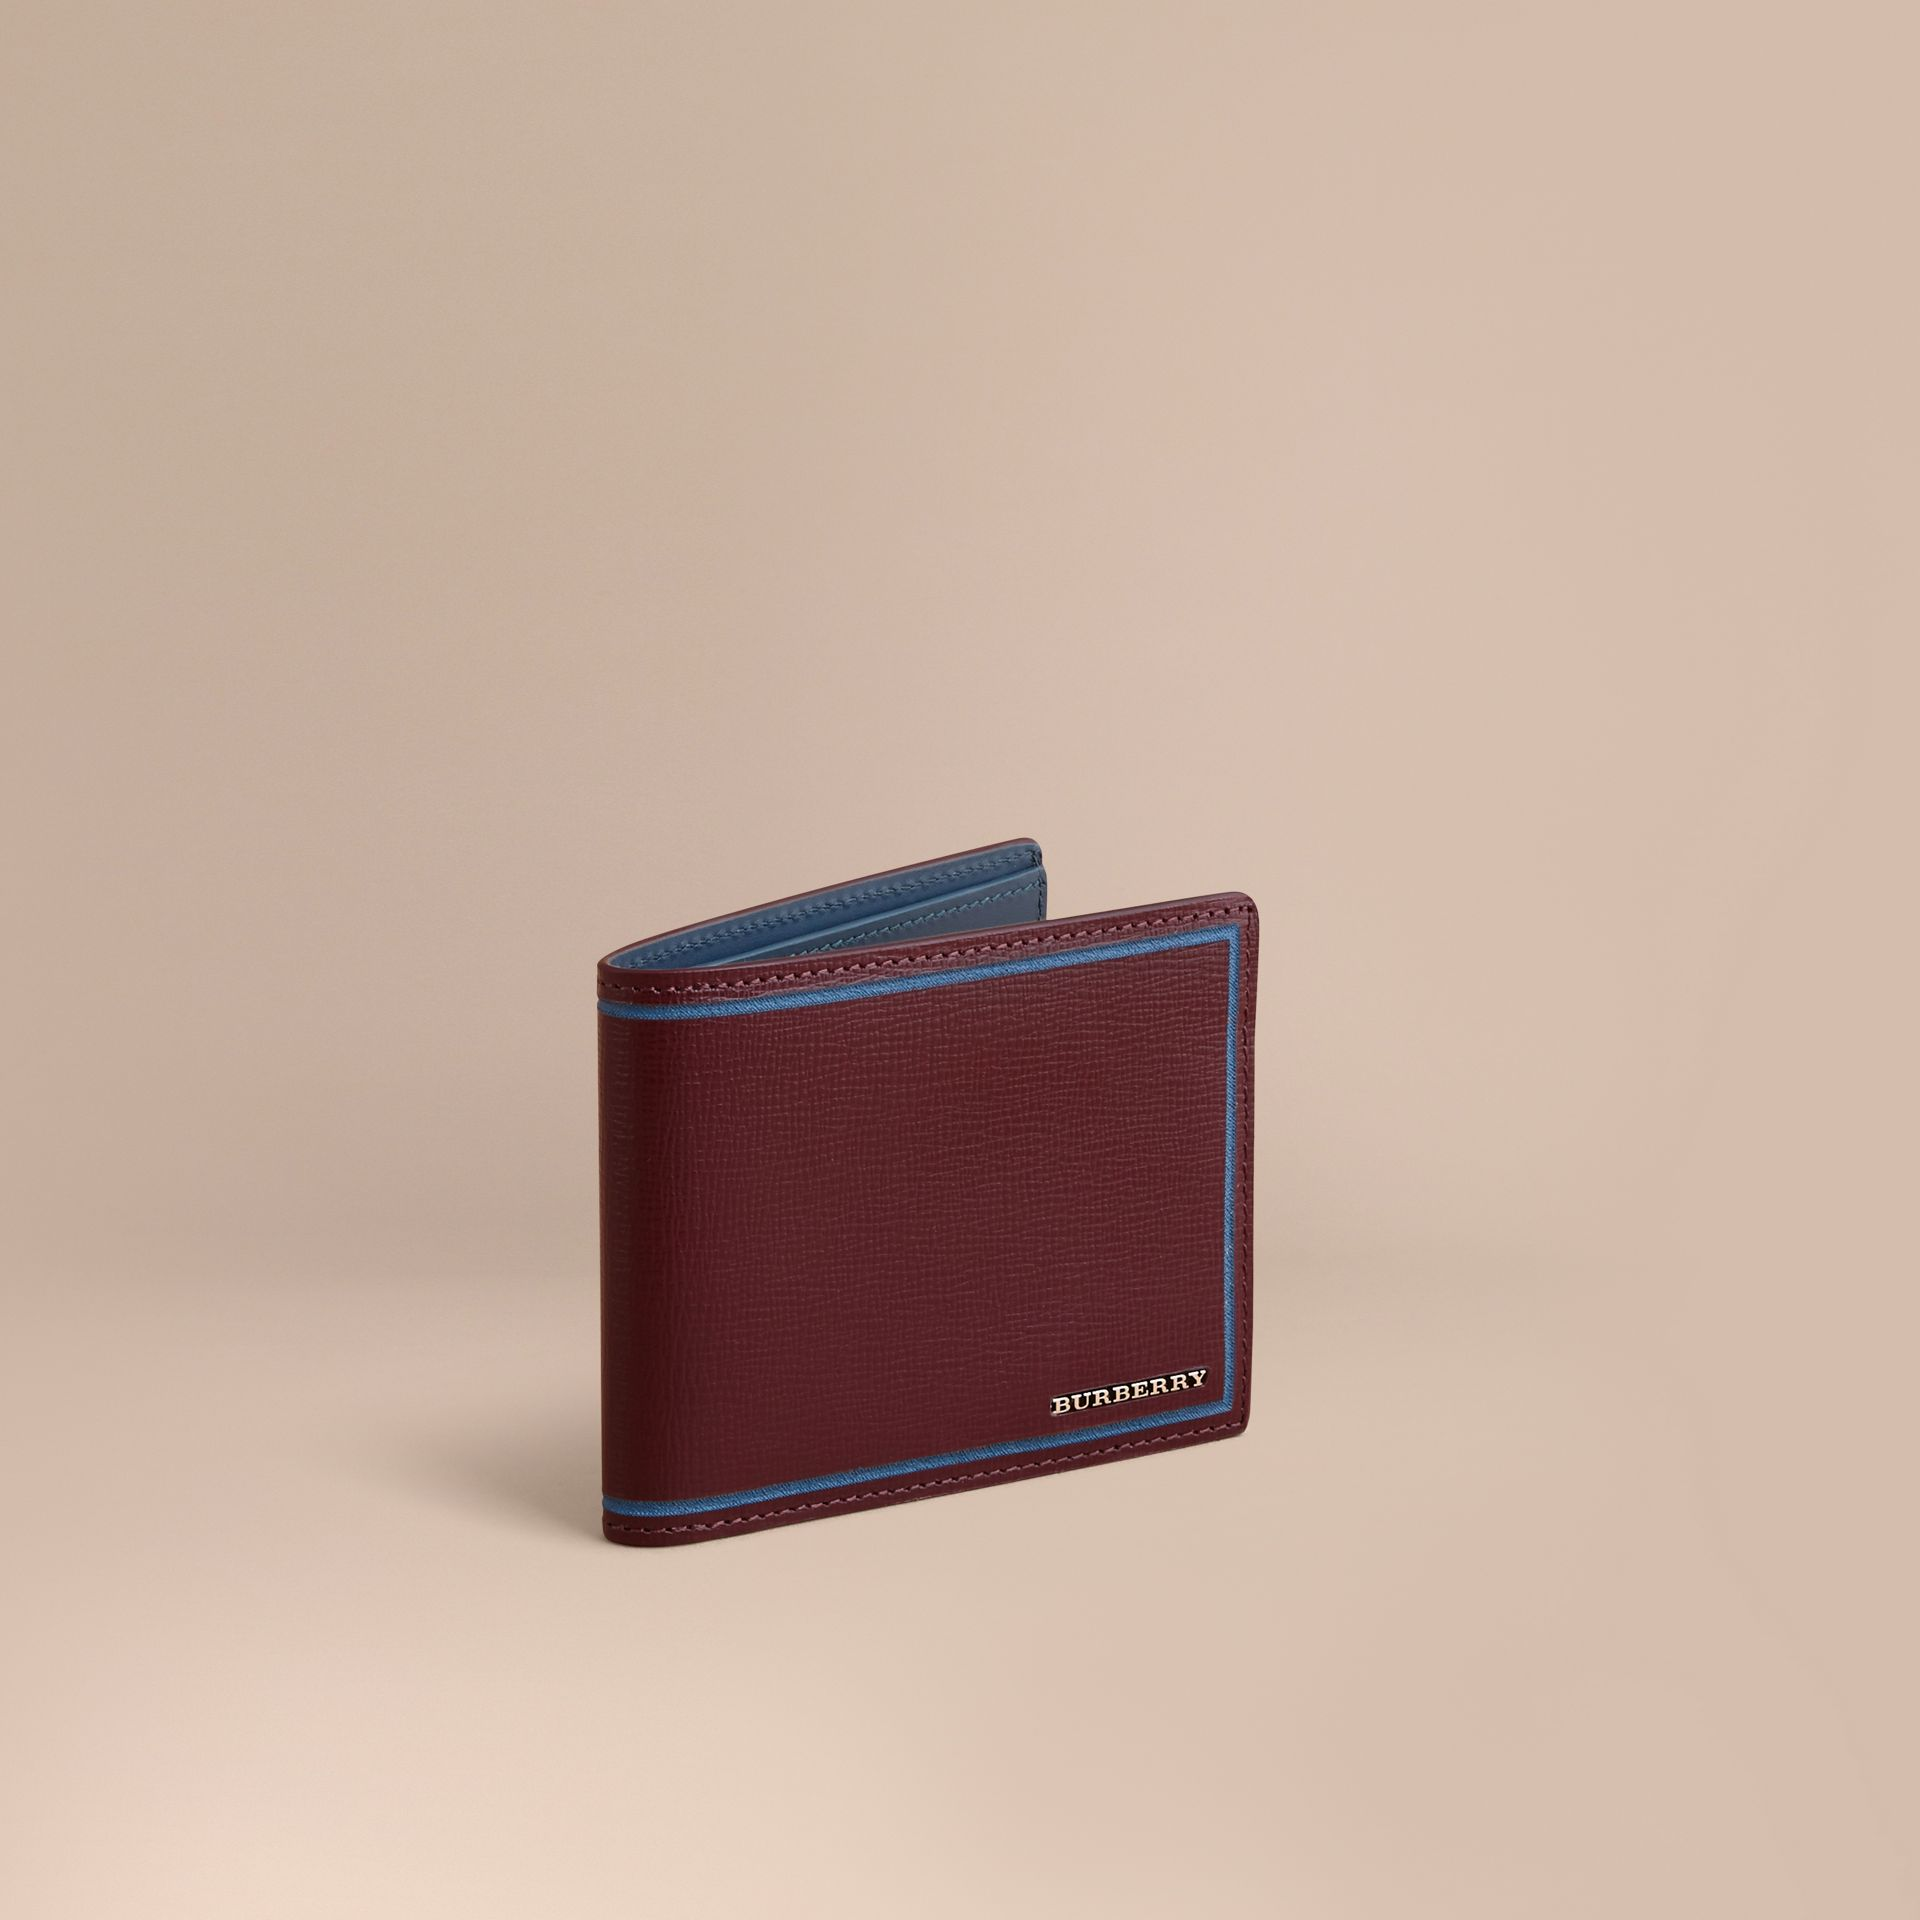 Border Detail London Leather Folding Wallet Burgundy Red - gallery image 1